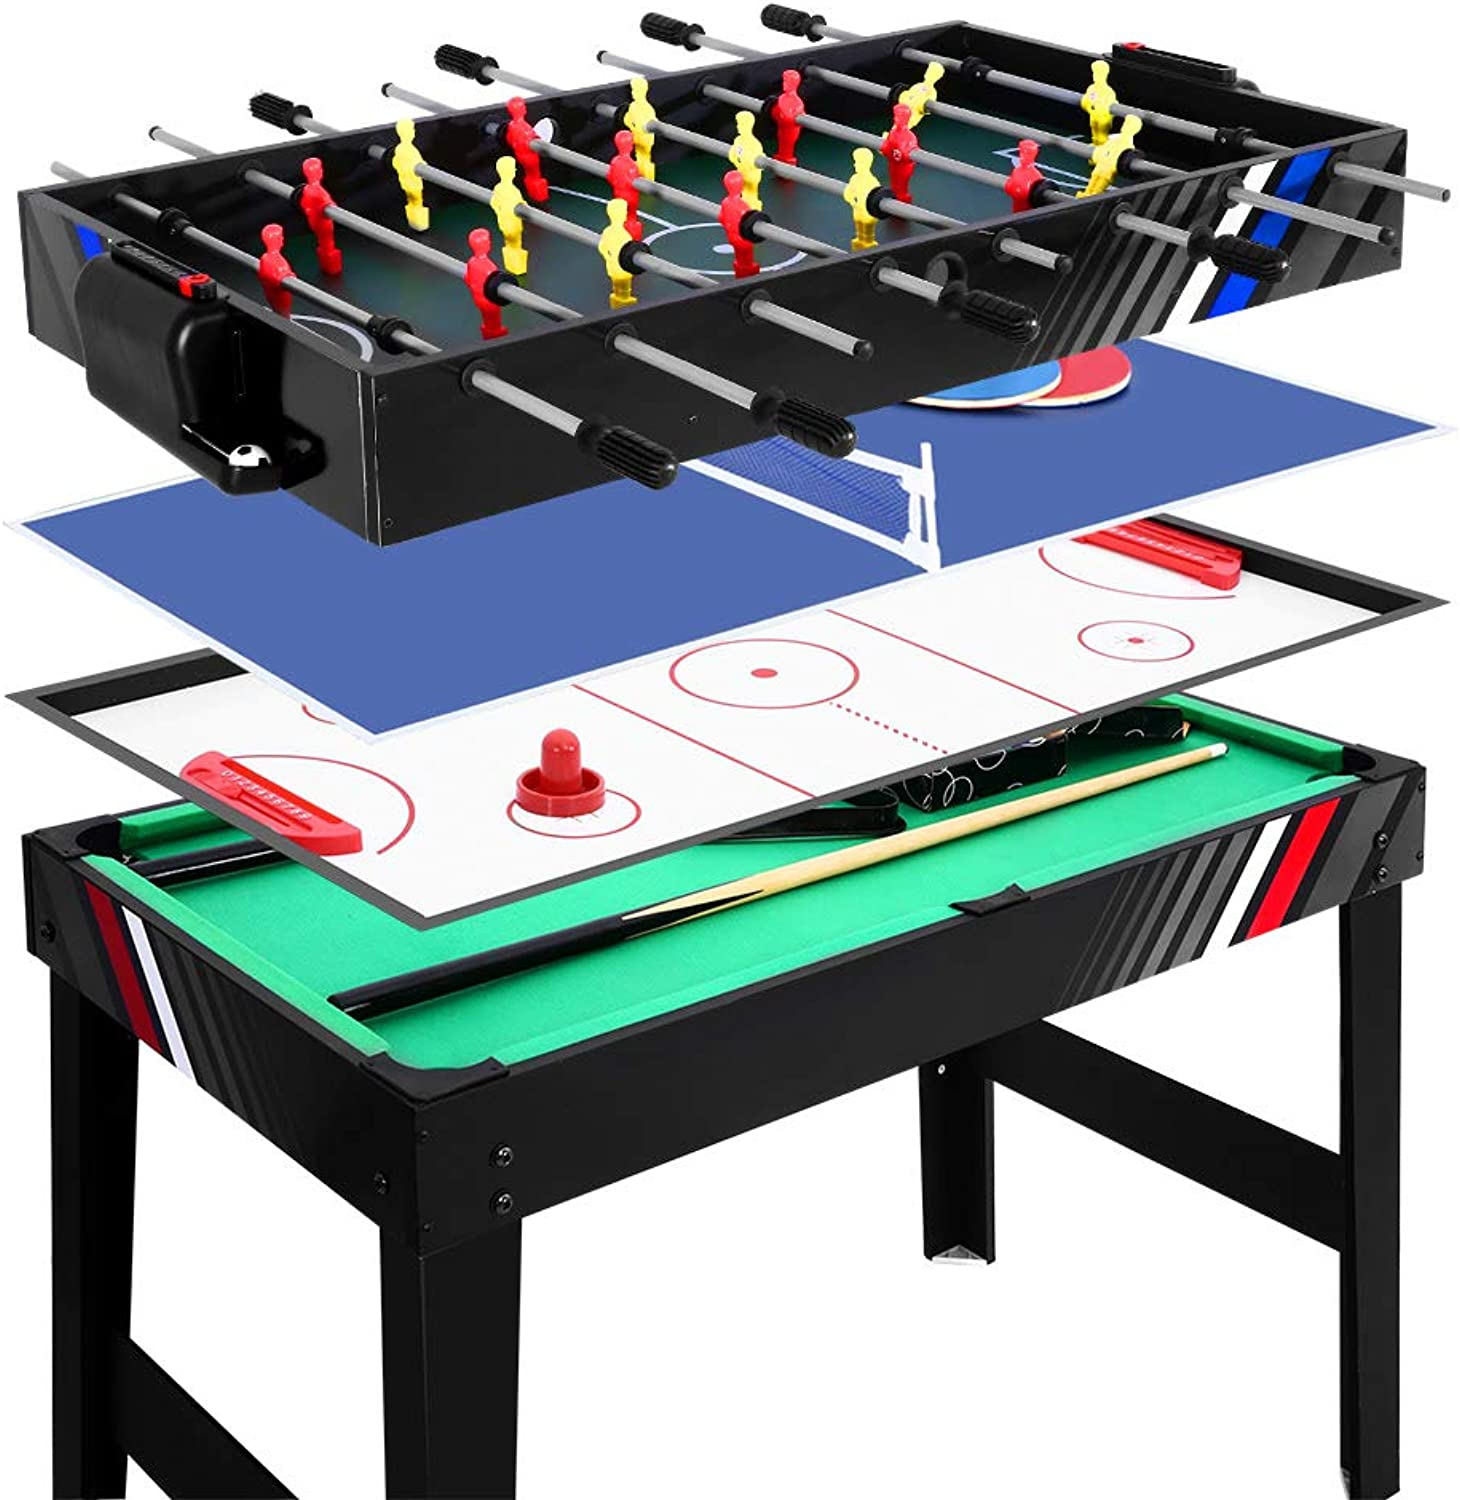 4in1 4FT Multi Games Table Soccer Football Foosball Ice Hockey Table Tennis Snooker Pool Games Kids Adults Family Party Entertainment Birthday Gift